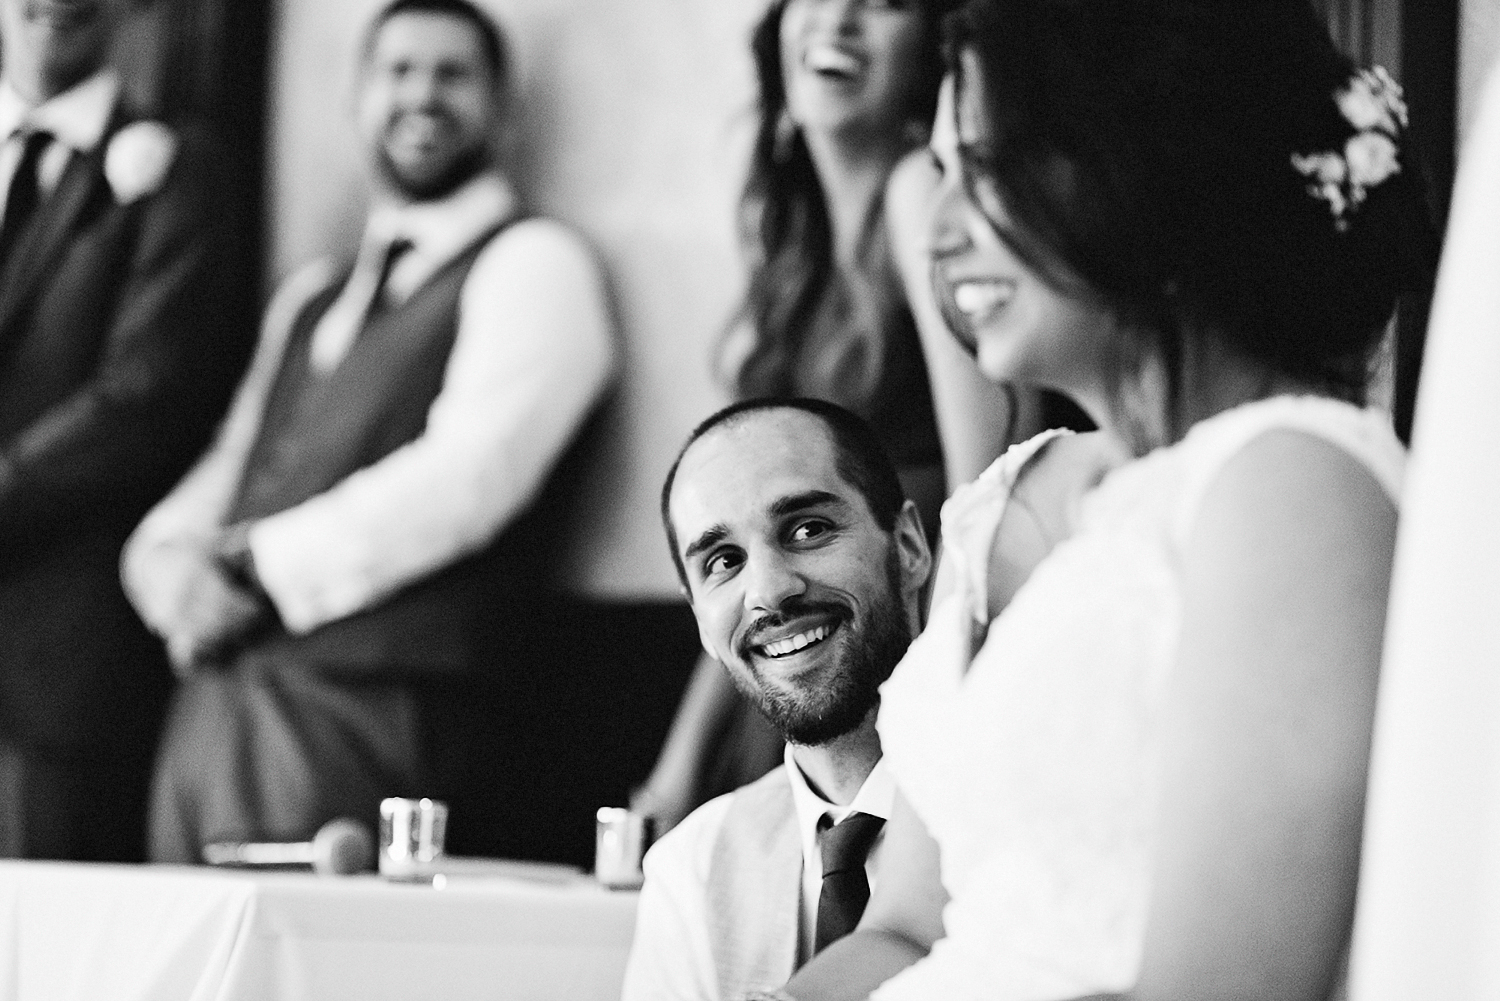 Toronto's-Best-Film-Wedding-Photography-3B-Photography-Multicultural-wedding-day-two-Hamilton-Grimsby-Toronto-Wedding-documentary-photojournalistic-photojournalism-Groom-Reaction-to-speech-laughing-candid.jpg